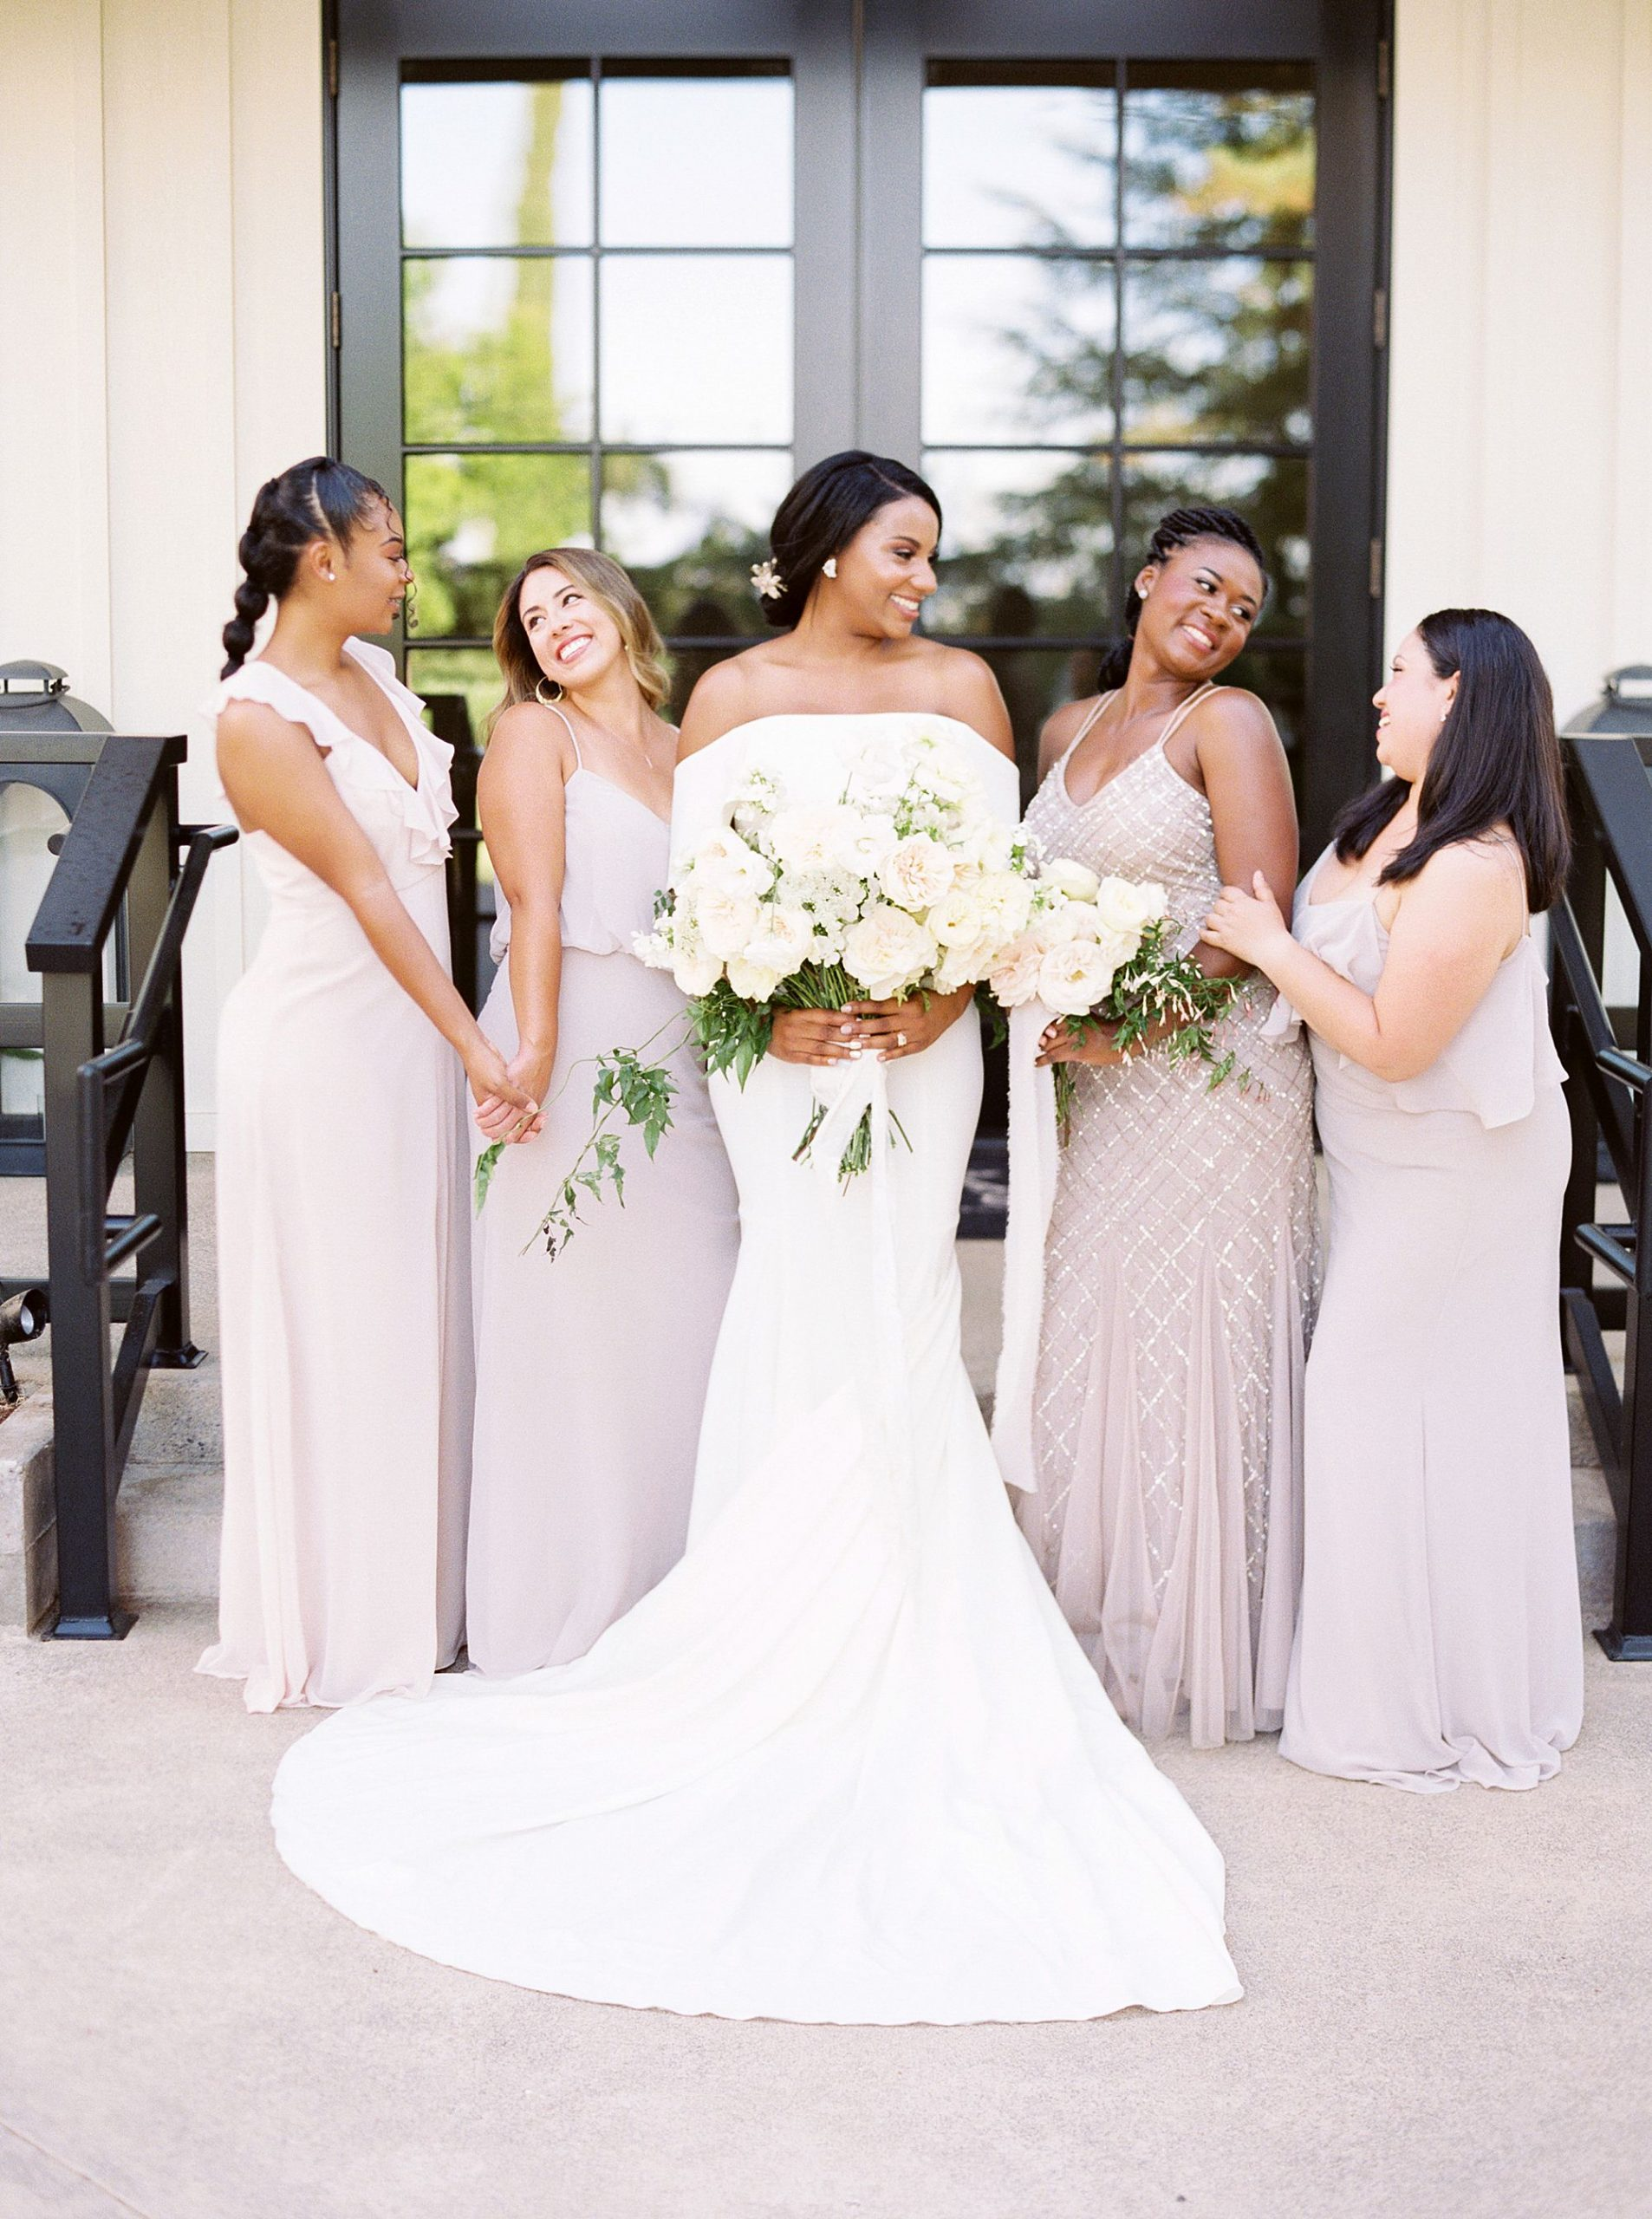 Park Winters Micro-Wedding Inspiration on Style Me Pretty - Stephanie Teague Events - Ashley Baumgartner - Park Winters Wedding - Black Tie Wedding - Micro-Wedding Sacramento Photographer_0060.jpg